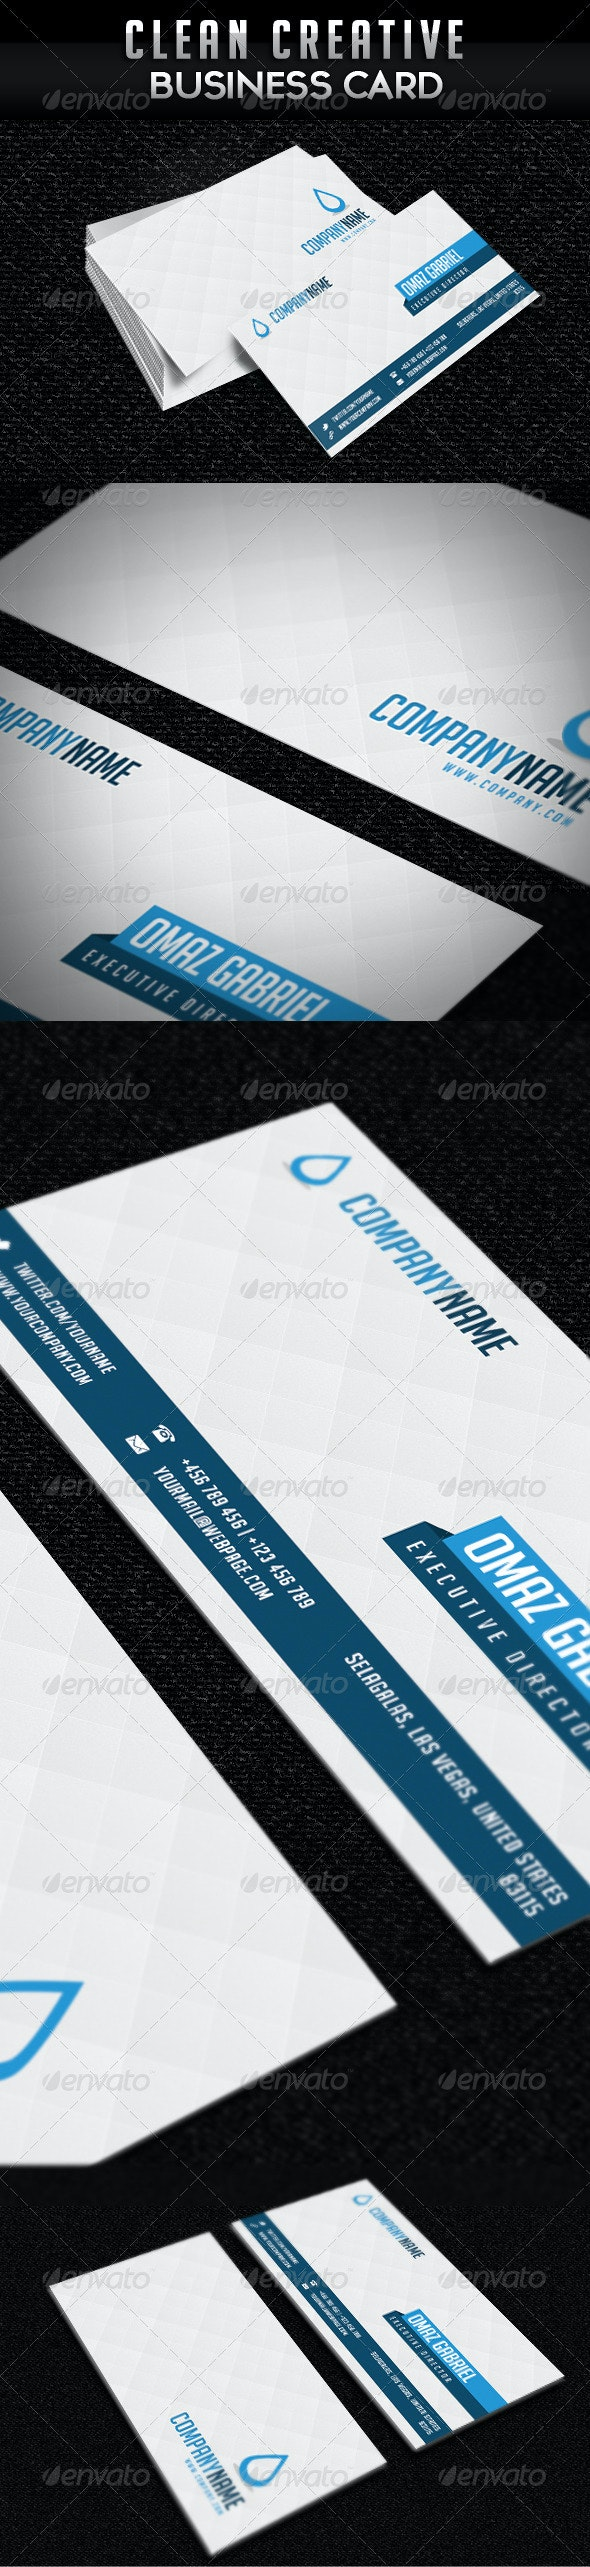 Creative Clean Minimalist Business Card - Creative Business Cards